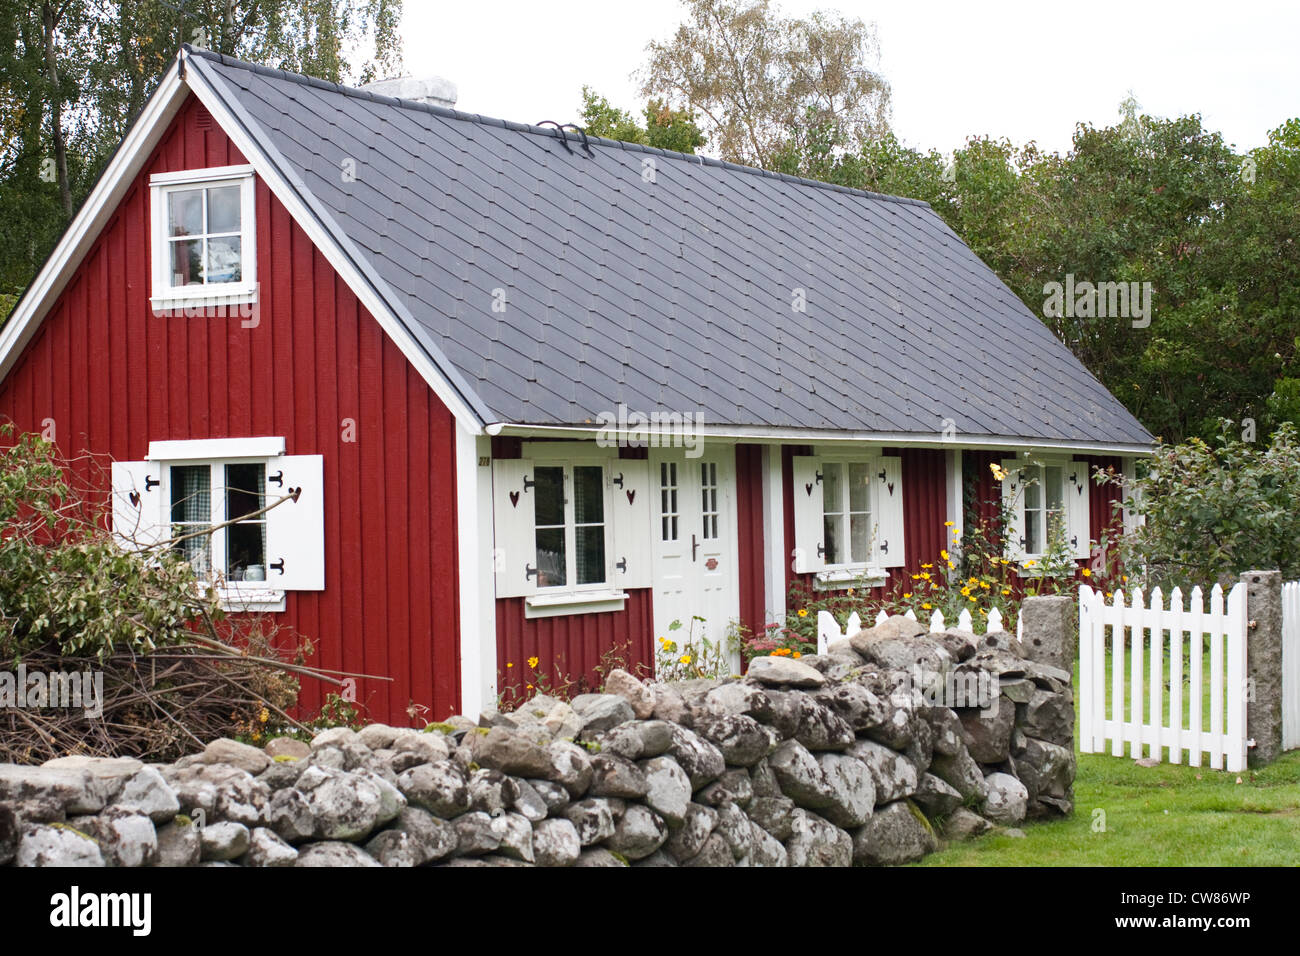 Typical Swedish Red House Stock Photos & Typical Swedish Red House on swedish interior design, swedish loft design, swedish restaurant design, swedish office design, swedish garden design, swedish home design, swedish kitchen design, swedish design style, swedish apartment design, swedish modern design, swedish traditional design, swedish cottage design, swedish log cabin design, swedish barn design, swedish country design,